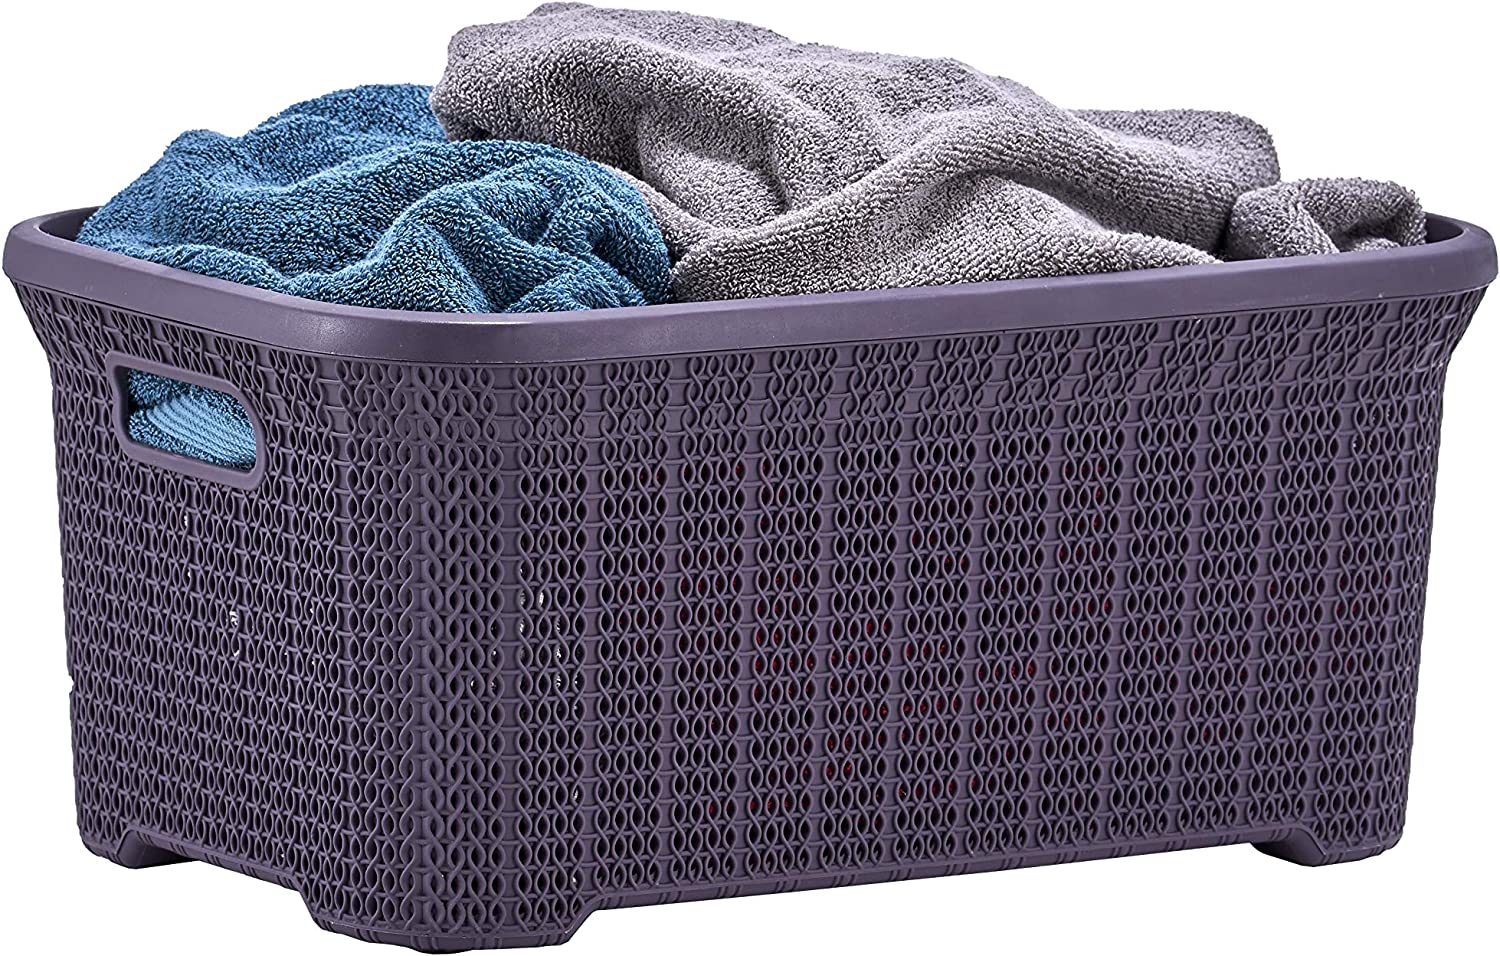 Superio Laundry Basket Knit Style, Purple 40 Liter Laundry Bin for Dirty Cloths - 1.15 Bushel